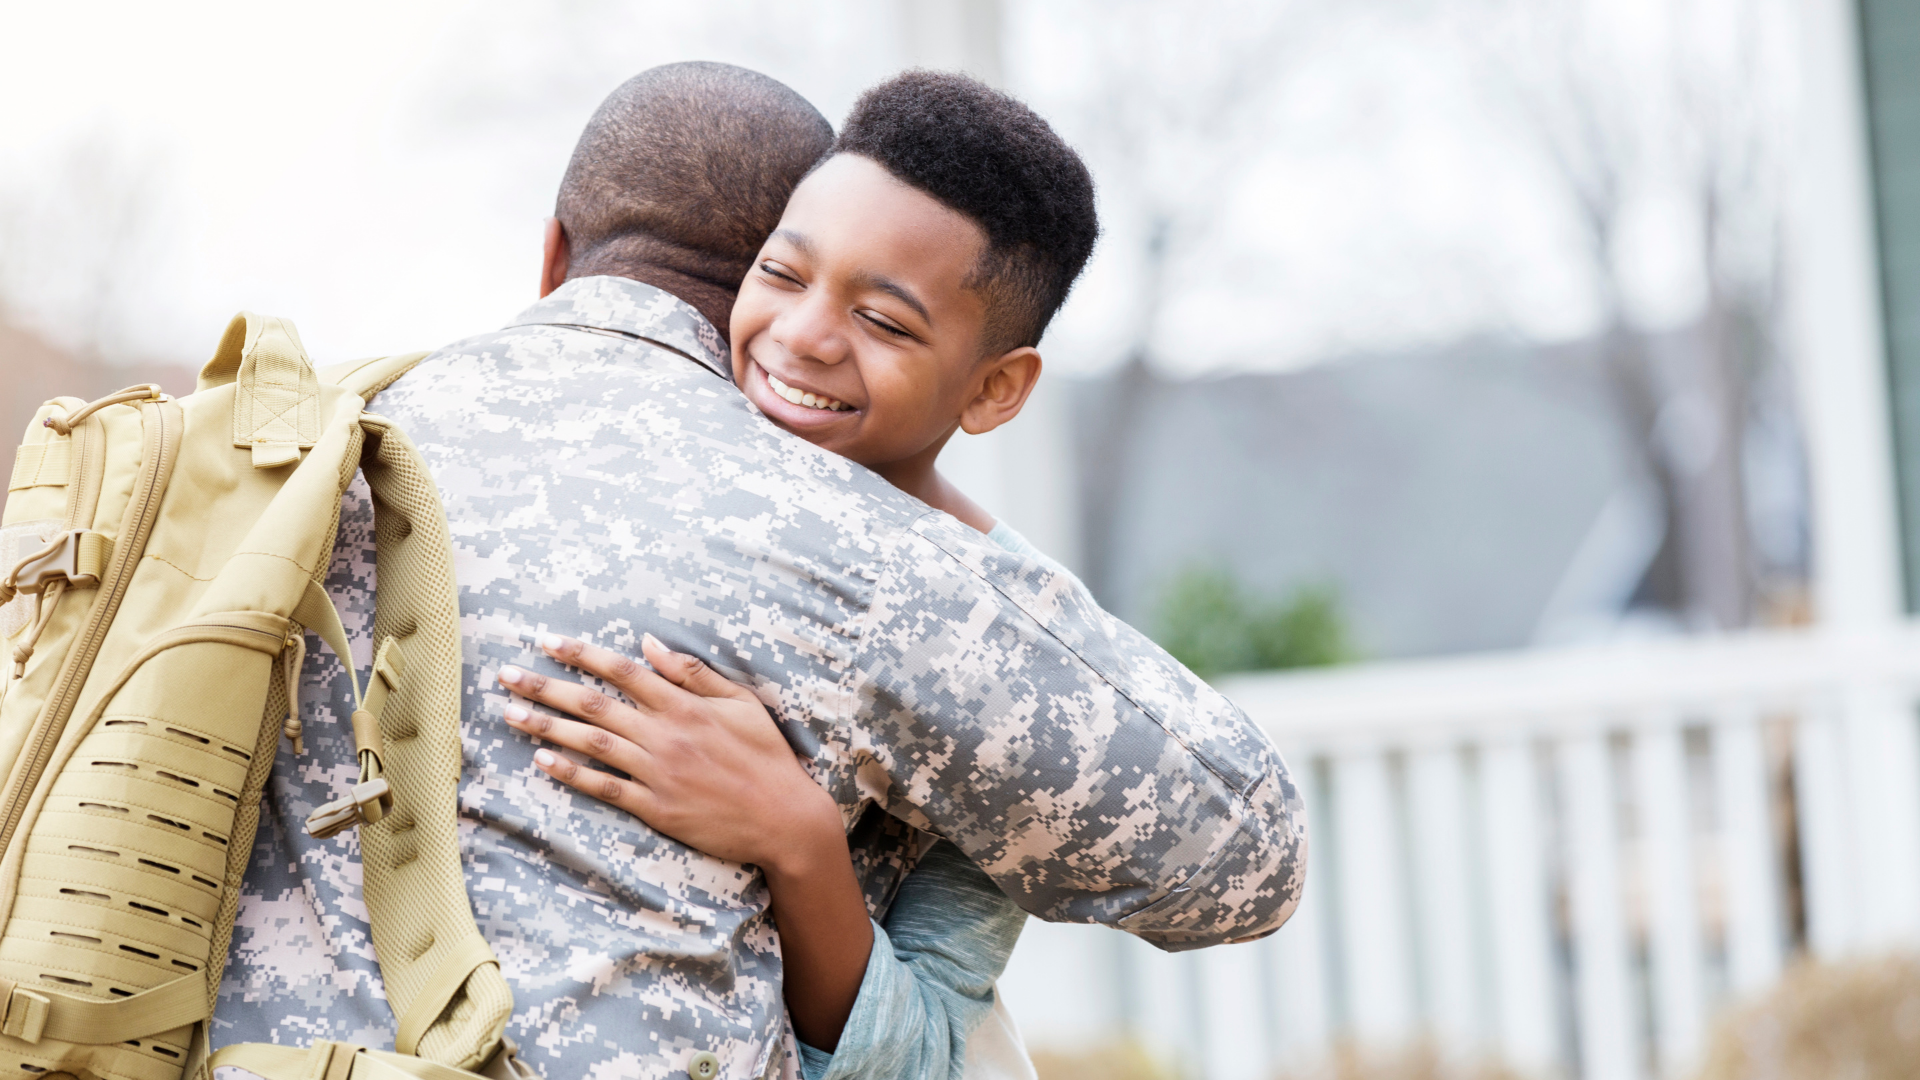 New Research to Help Military Members, Families During Post-Deployment Transition